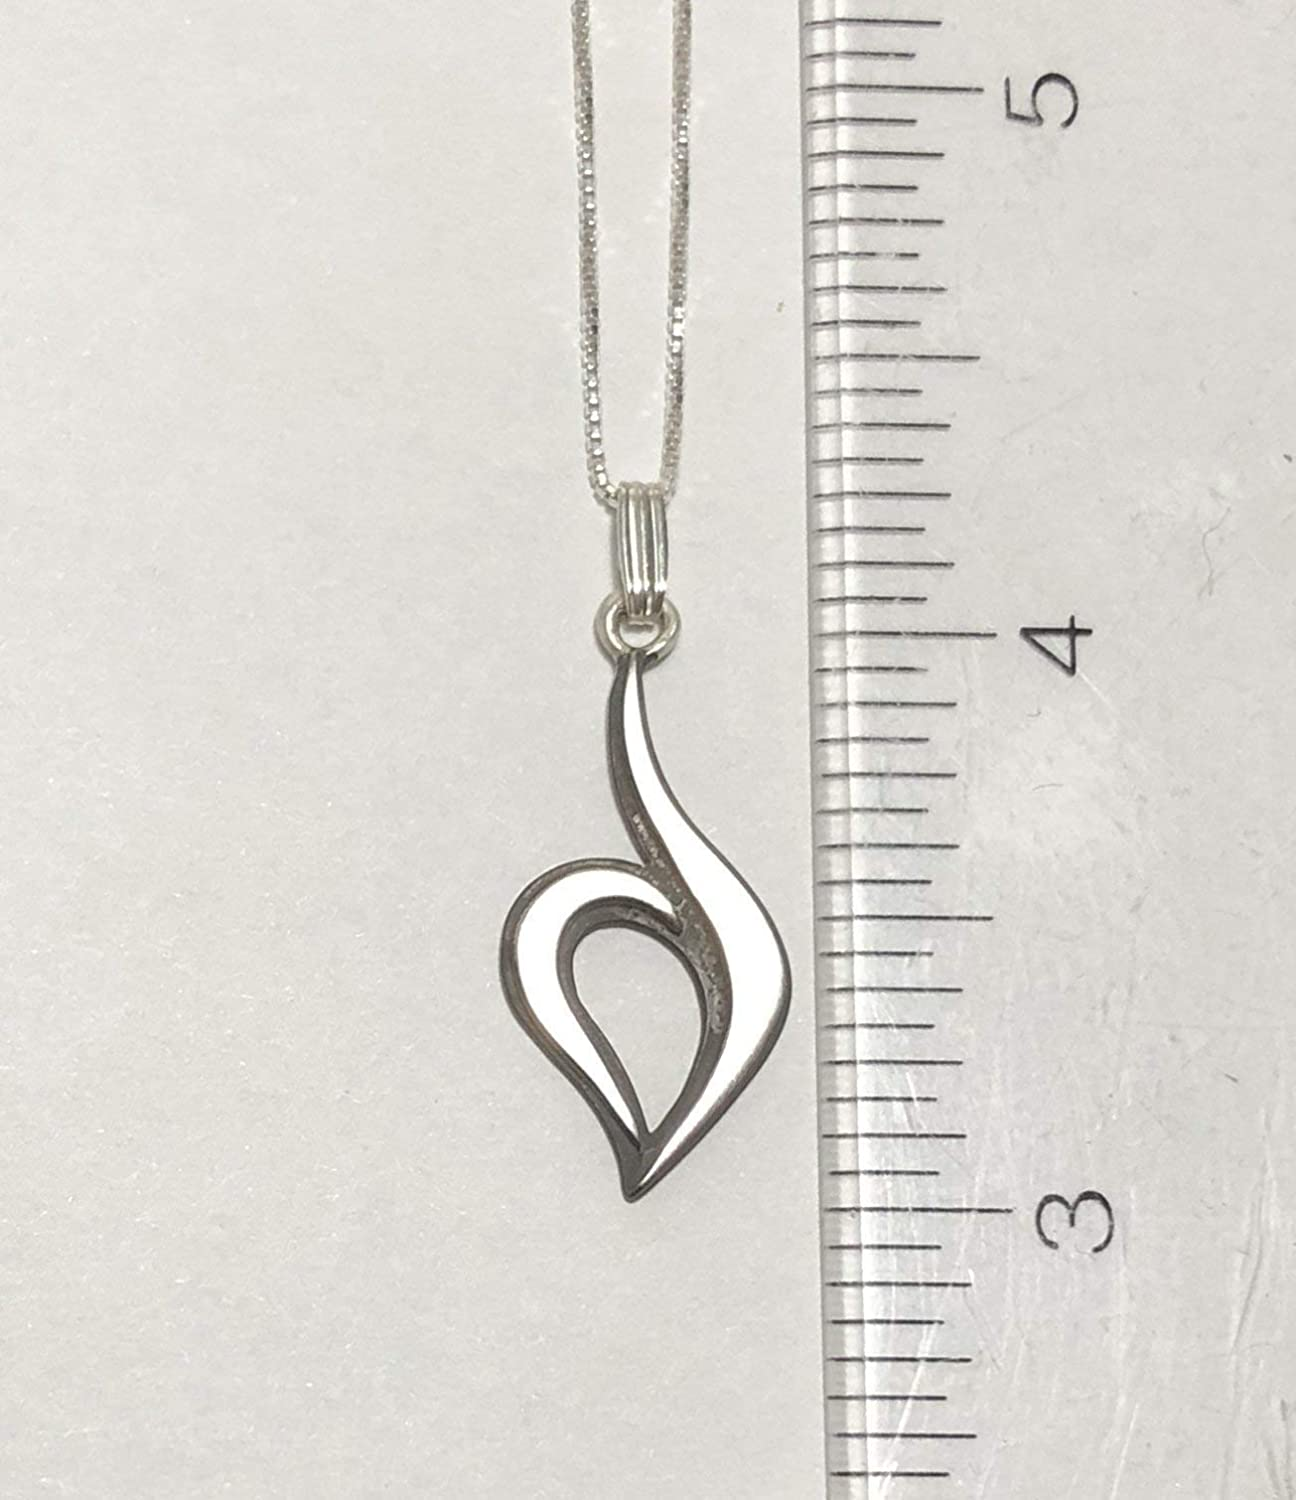 Eating Disorder Recovery Necklace with 1.2 pendant